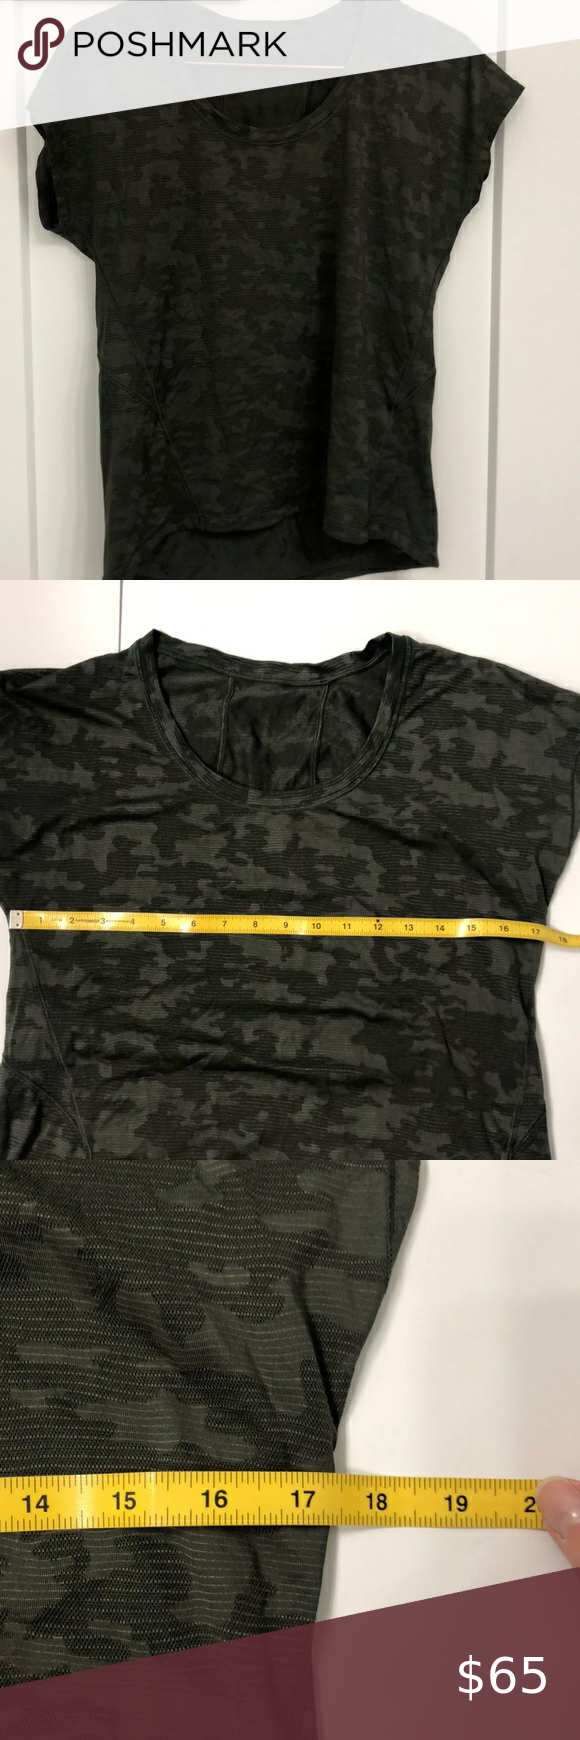 Lululemon workout camo top Check out this listing